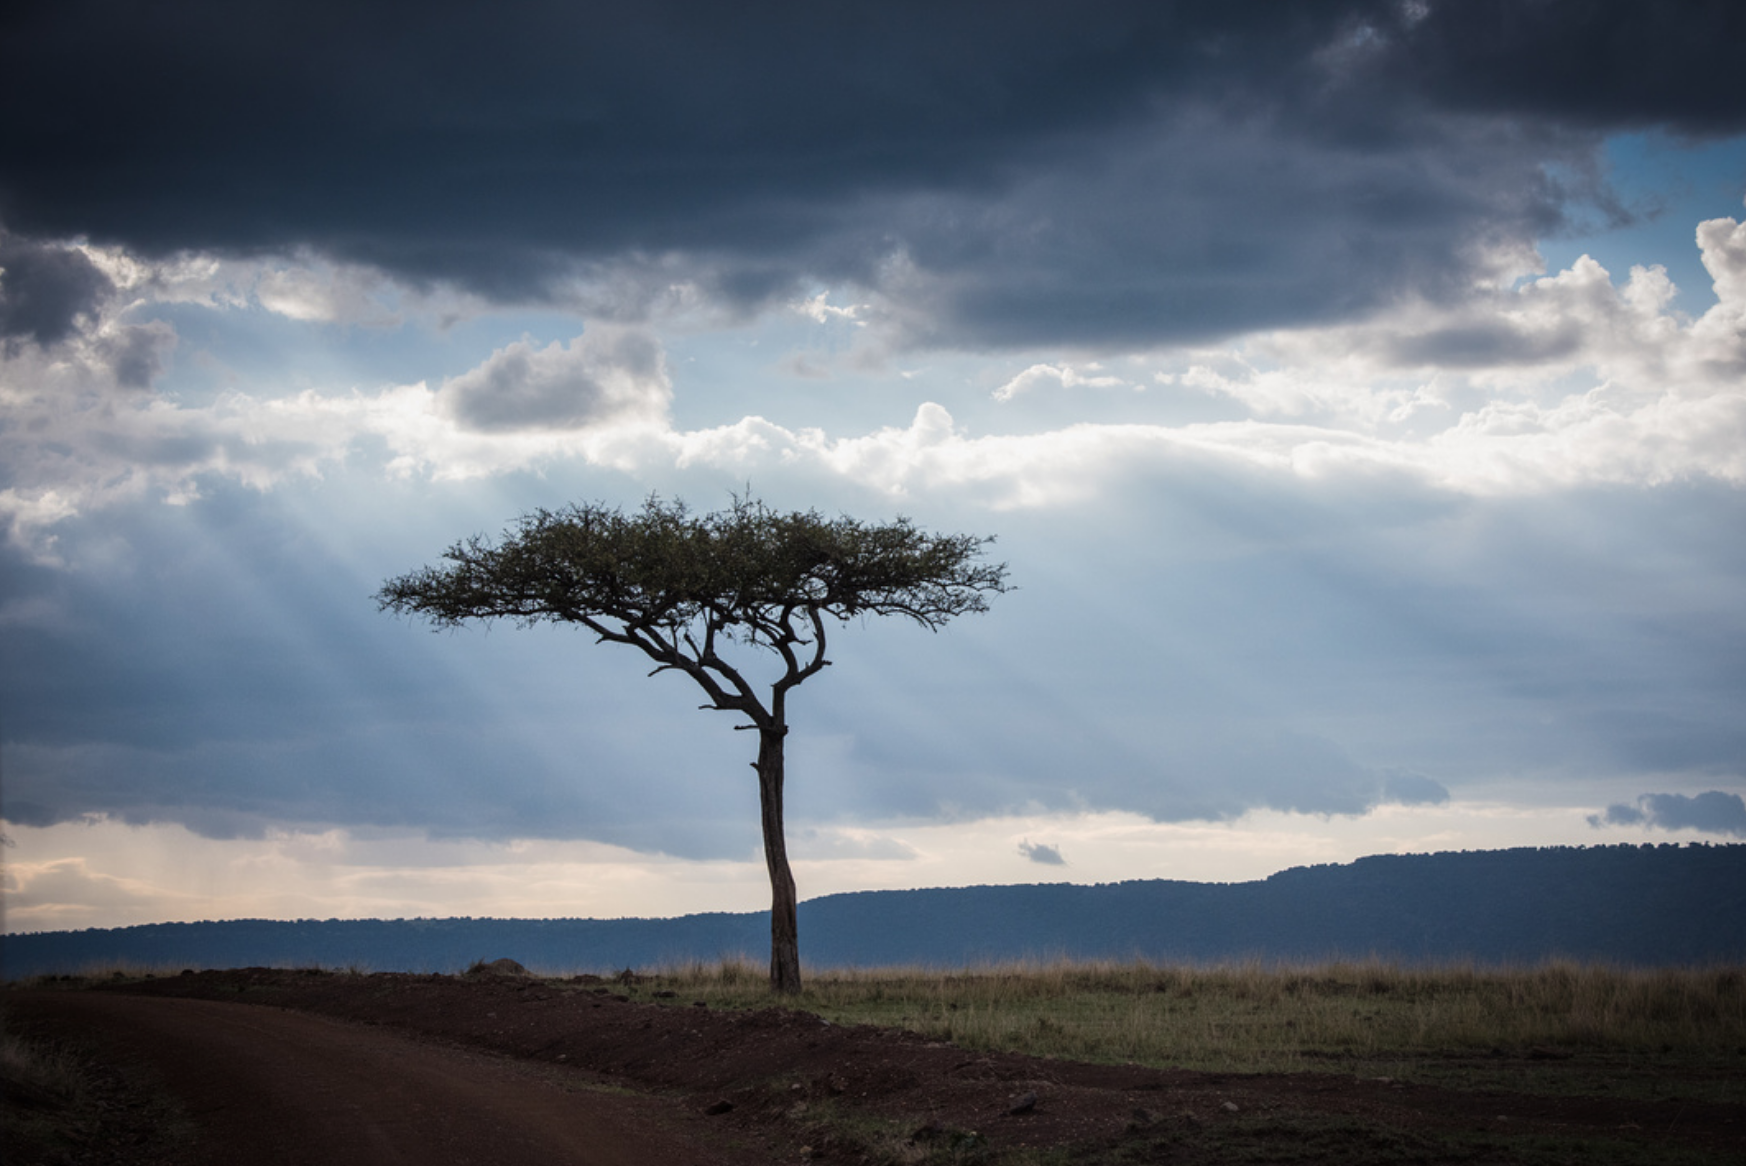 Moody trees in the Mara